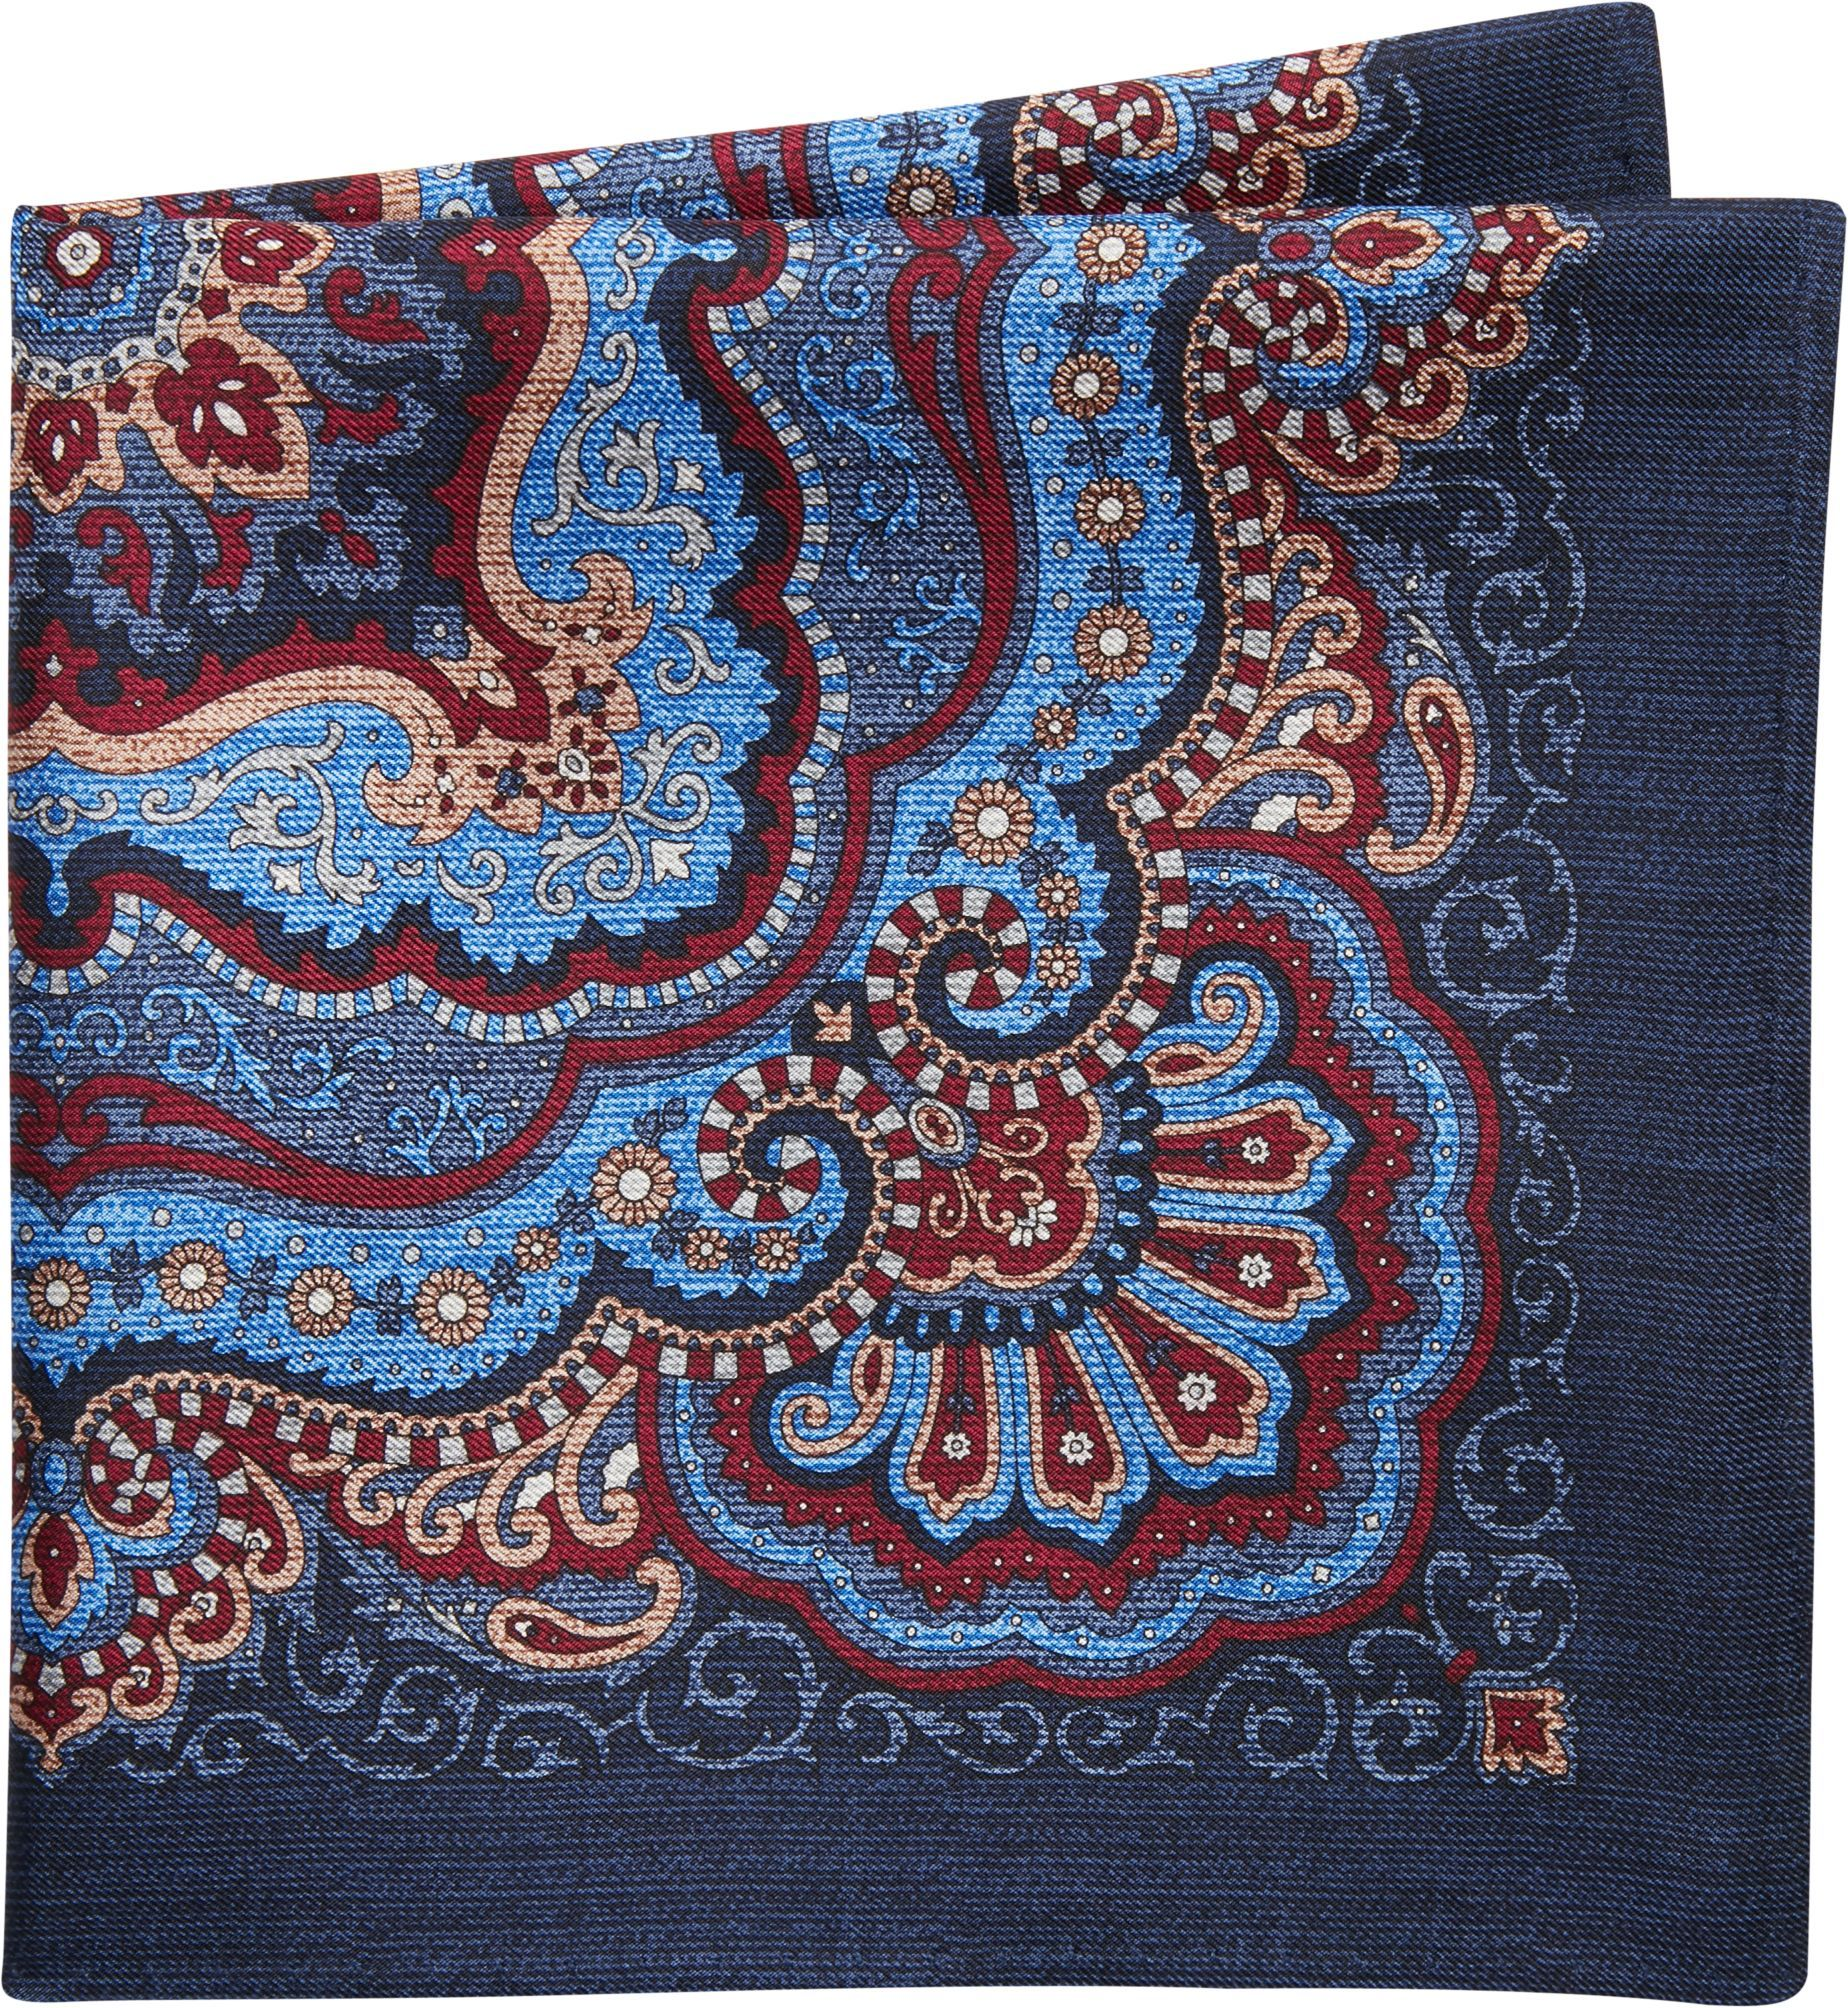 Jos. A. Bank Large Paisley Medallion Pattern Pocket Square #pocketsquares